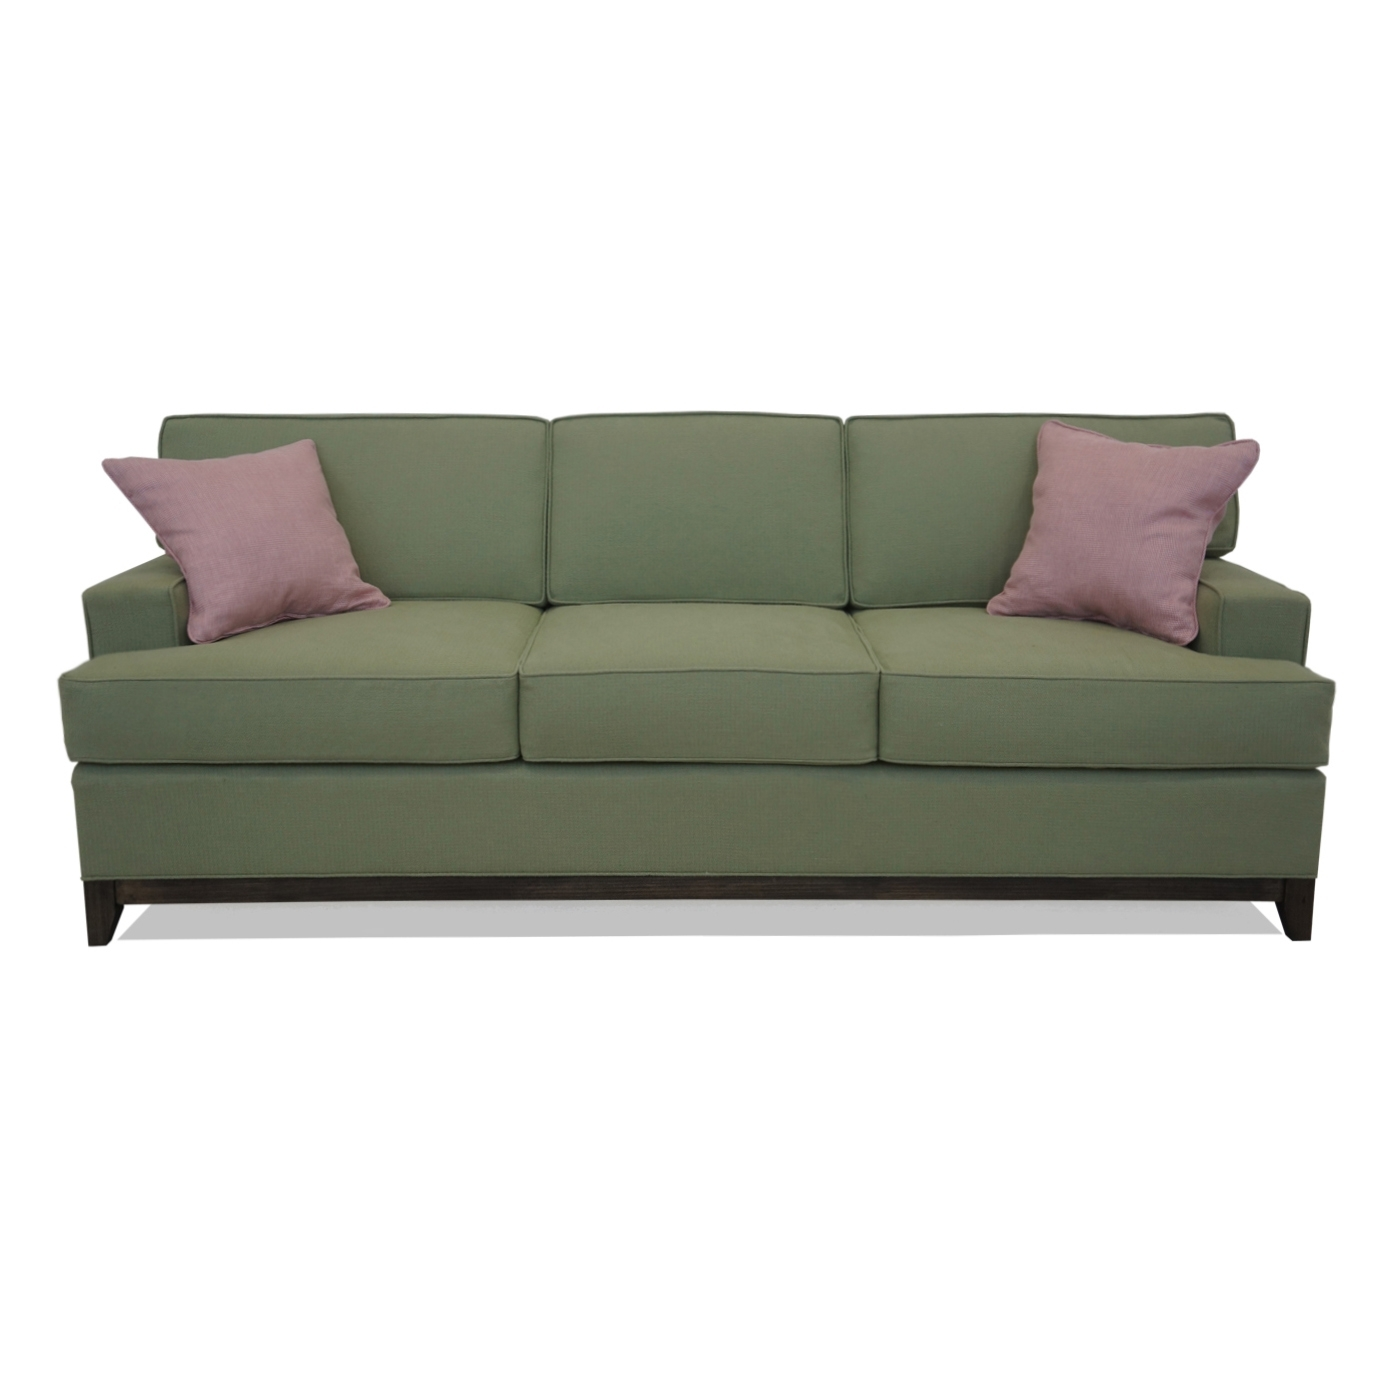 Favorite Eco Friendly Sectional Sofas With Regard To The Best Places To Shop For Eco Friendly Furniture (View 8 of 15)